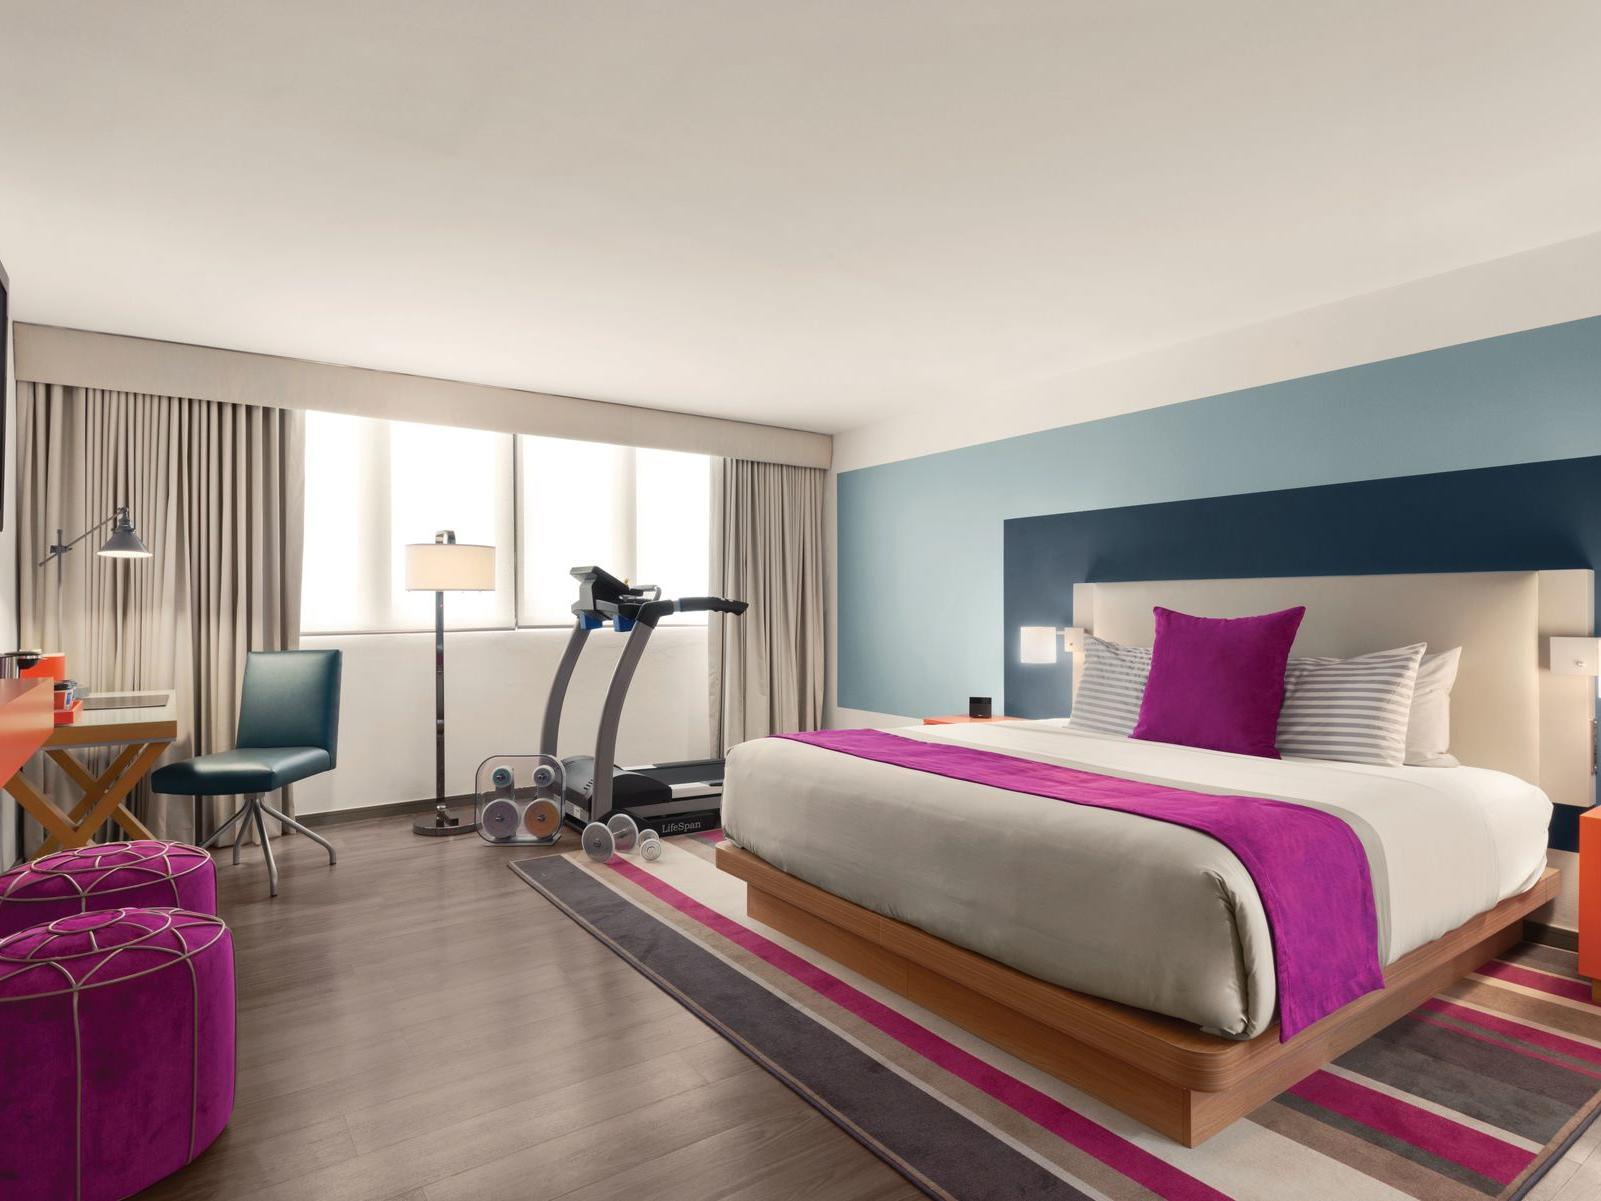 TRYP by Wyndham Isla Verde hotel room with king bed, treadmill and dumbbells near desk